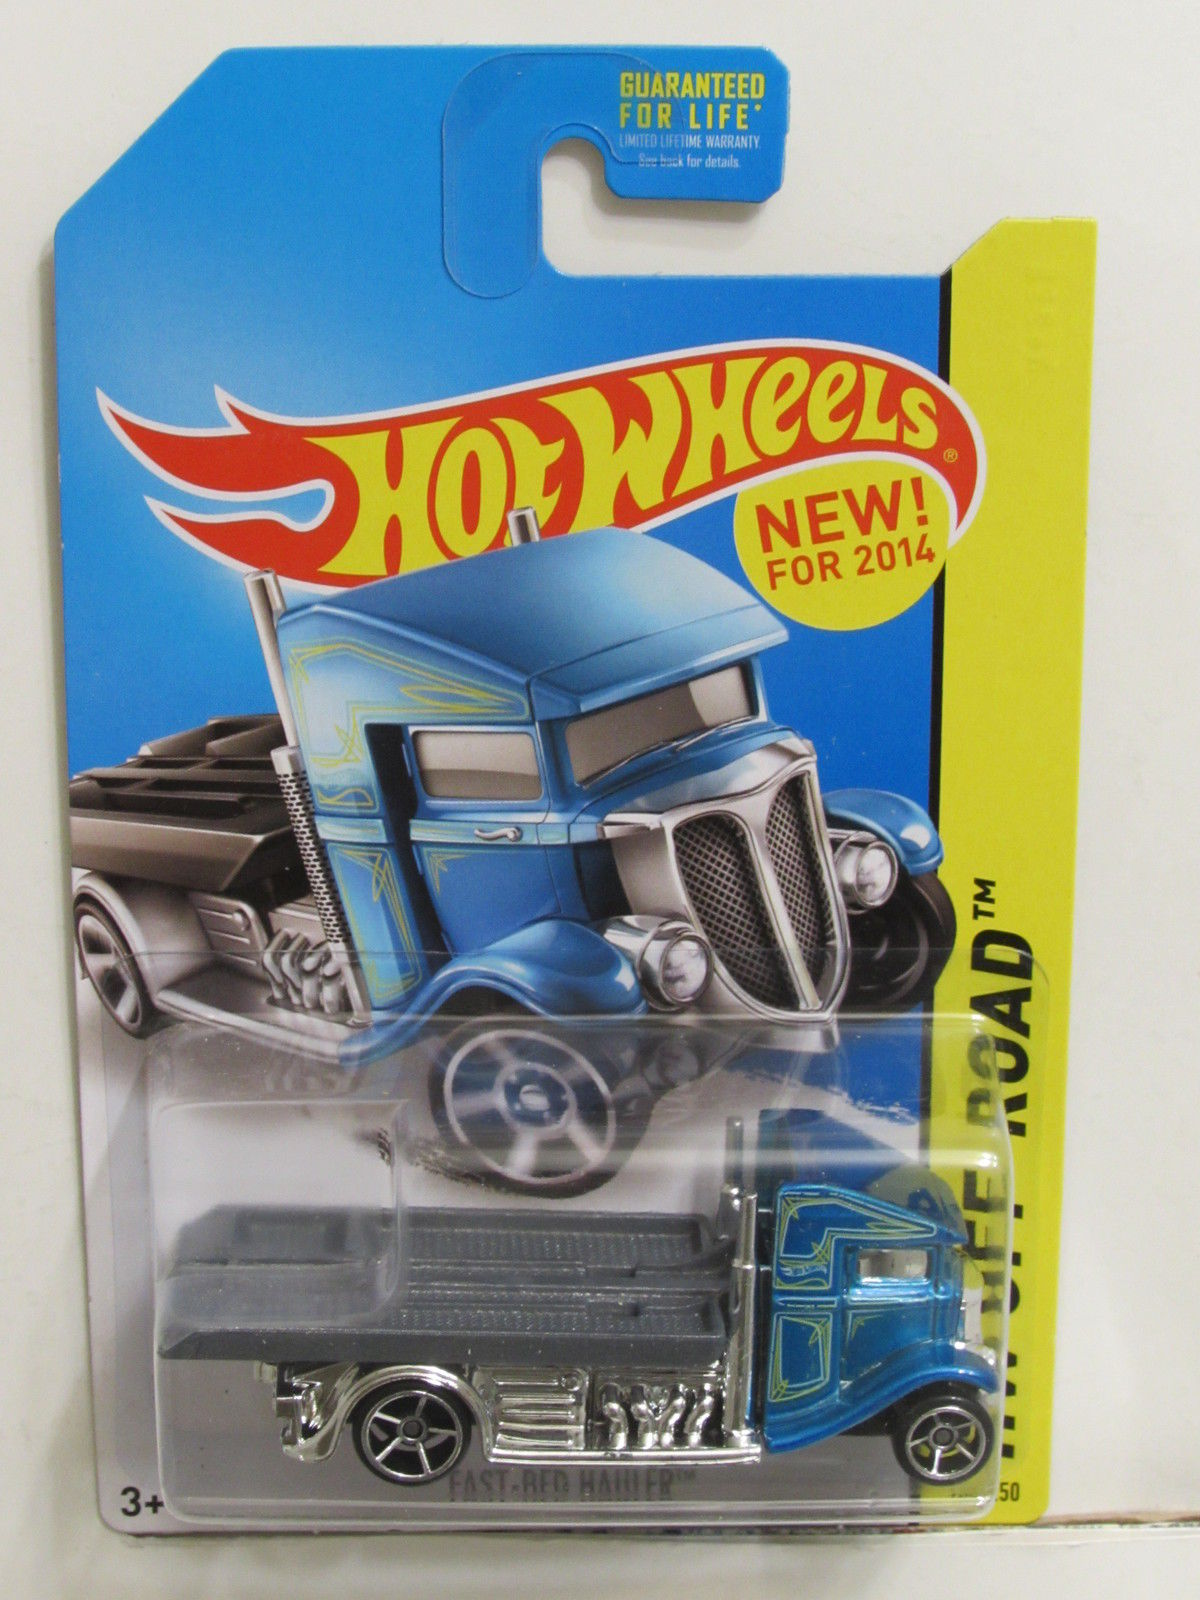 HOT WHEELS 2014 HW OFF ROAD STUNT CIRCUIT FAST-BED HAULER